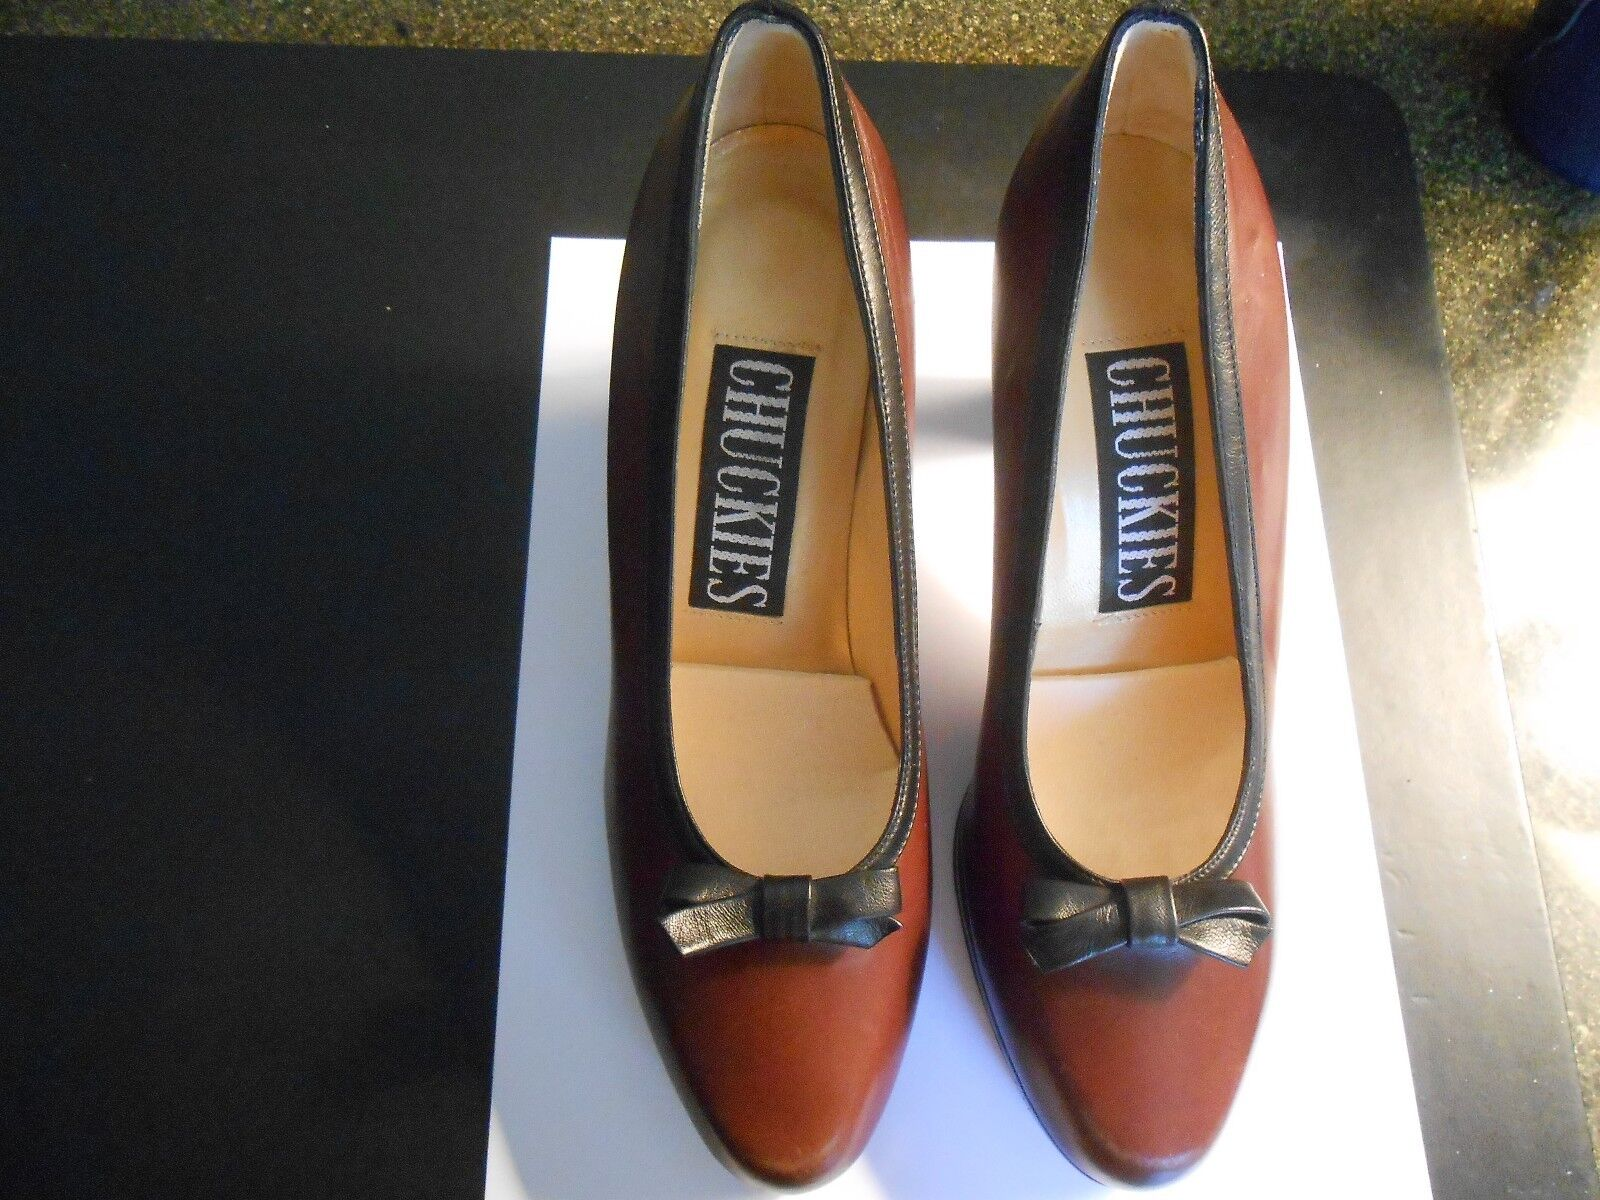 "CHUCKIES--CORDOVAN BLACK TRIM PUMPS--MADE IN ITALY--36 1 2 (WIDTH 3"")"